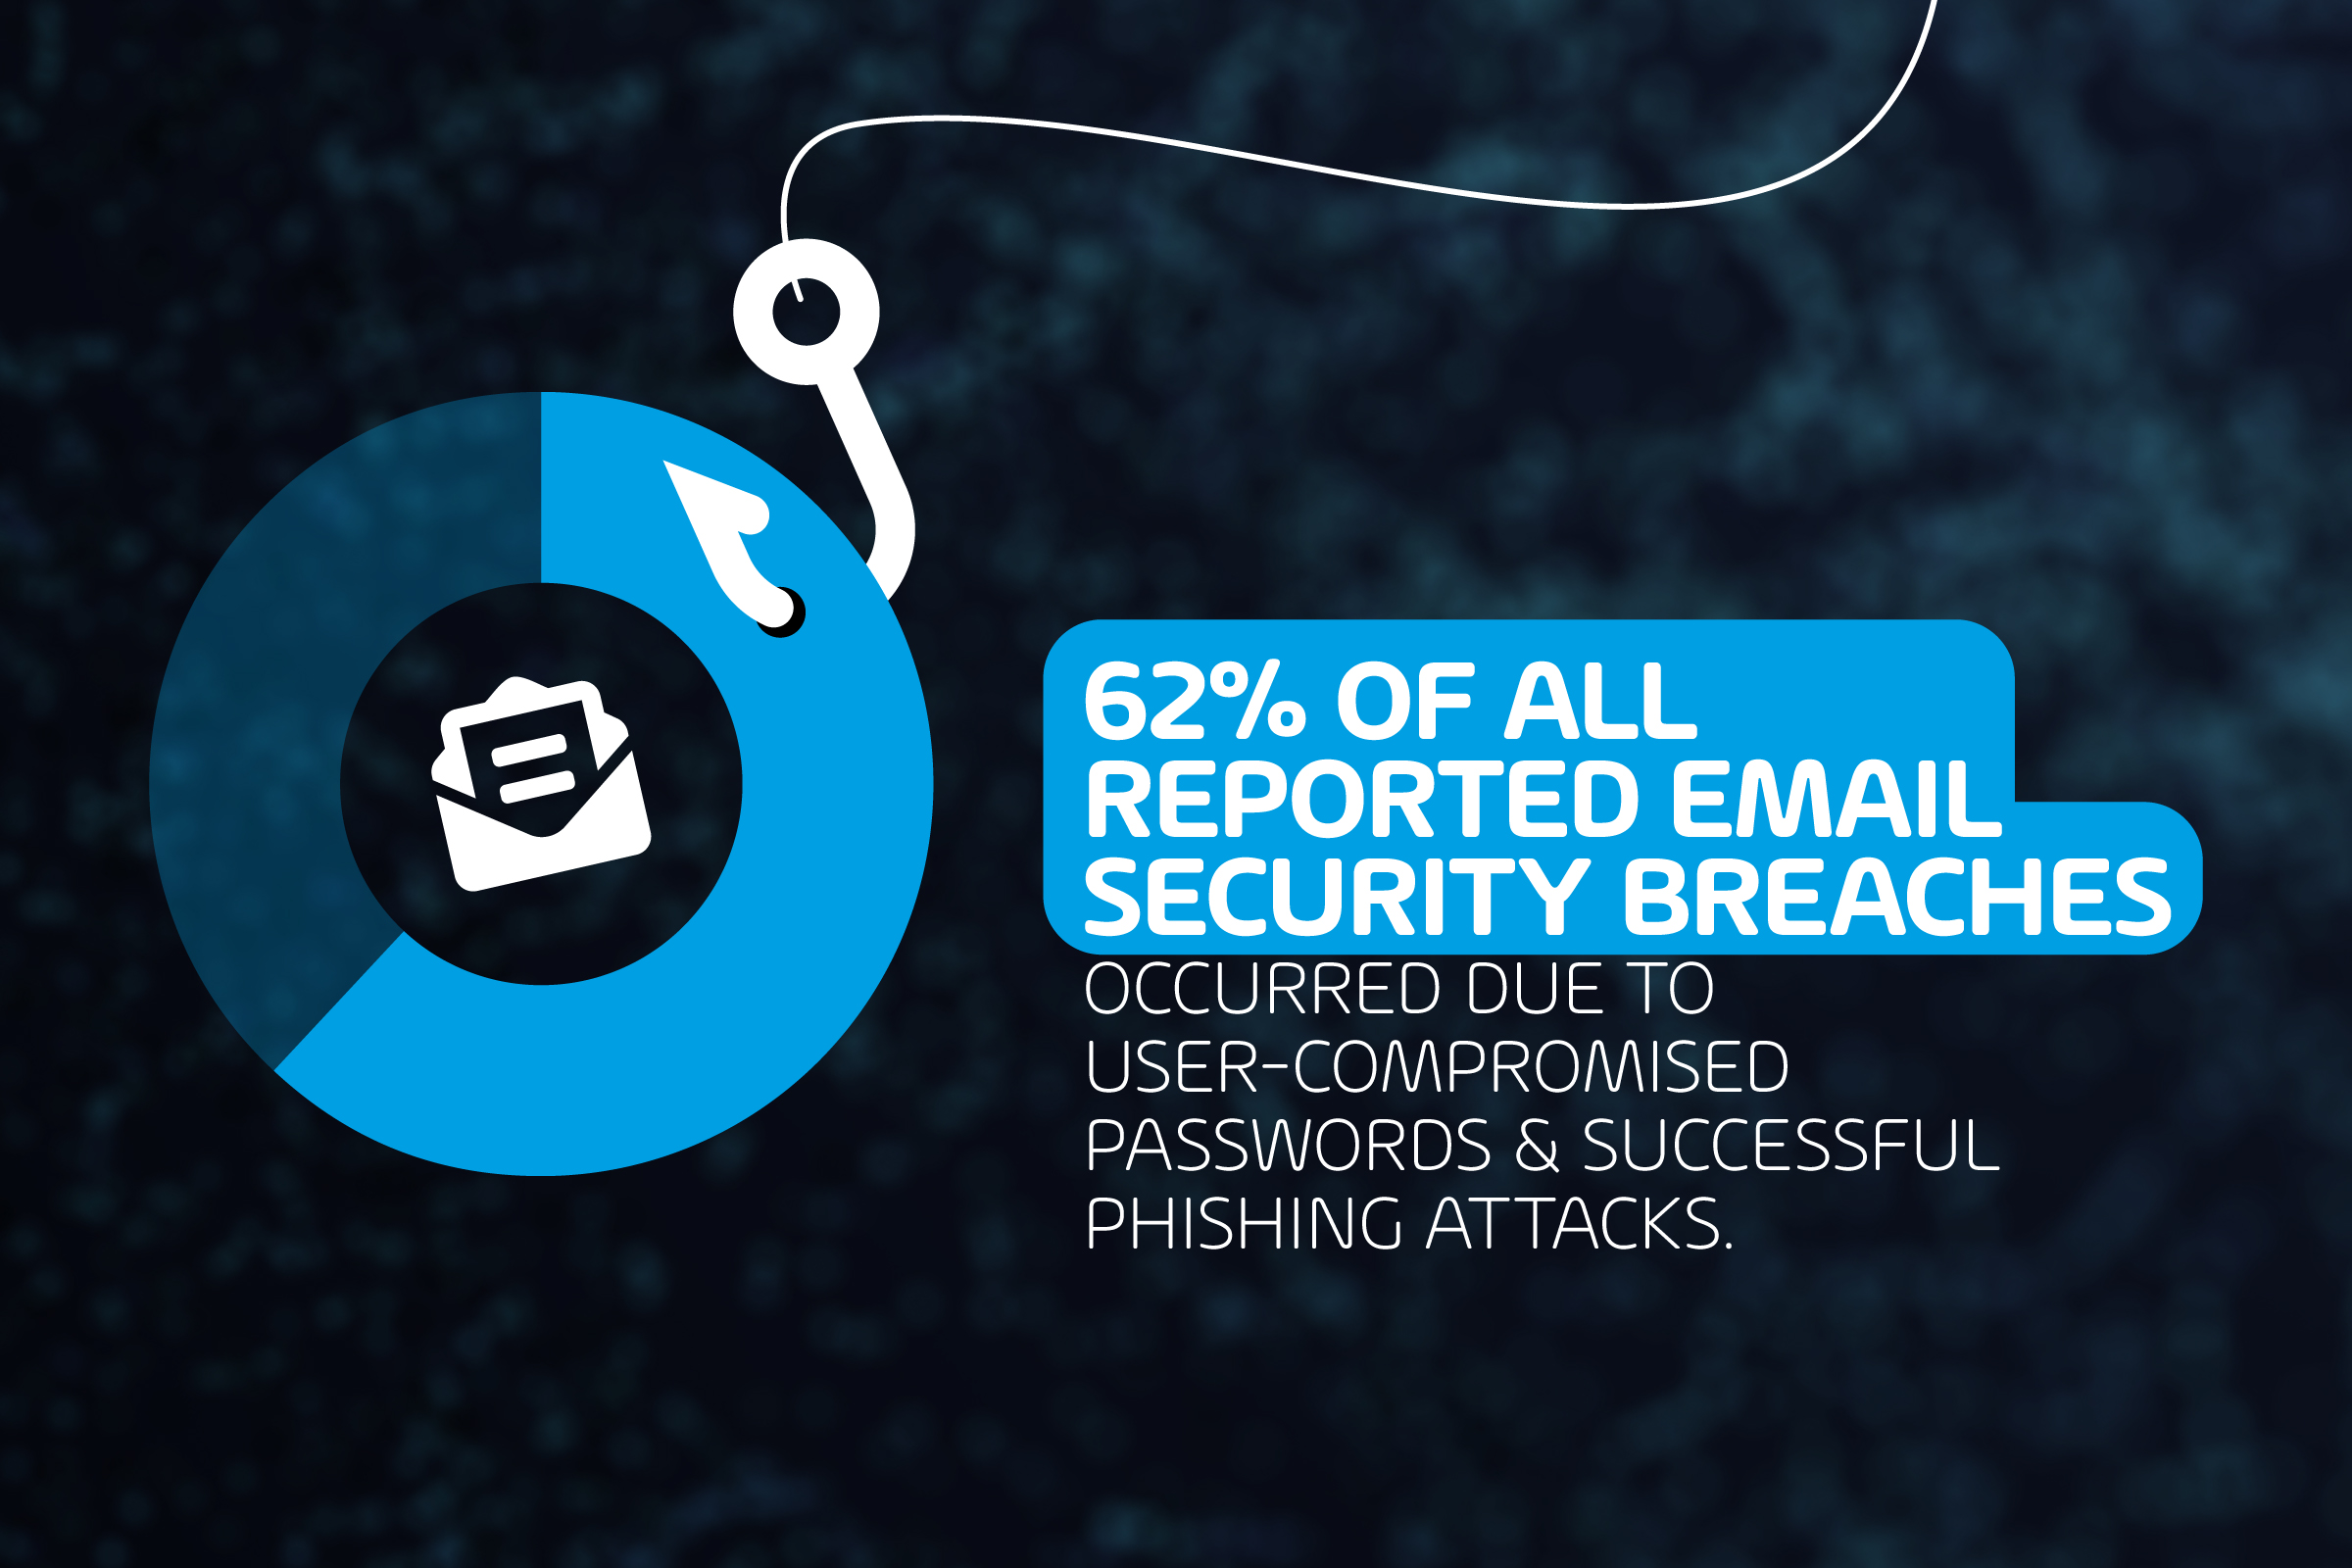 User Compromised PW and Phishing Attacks